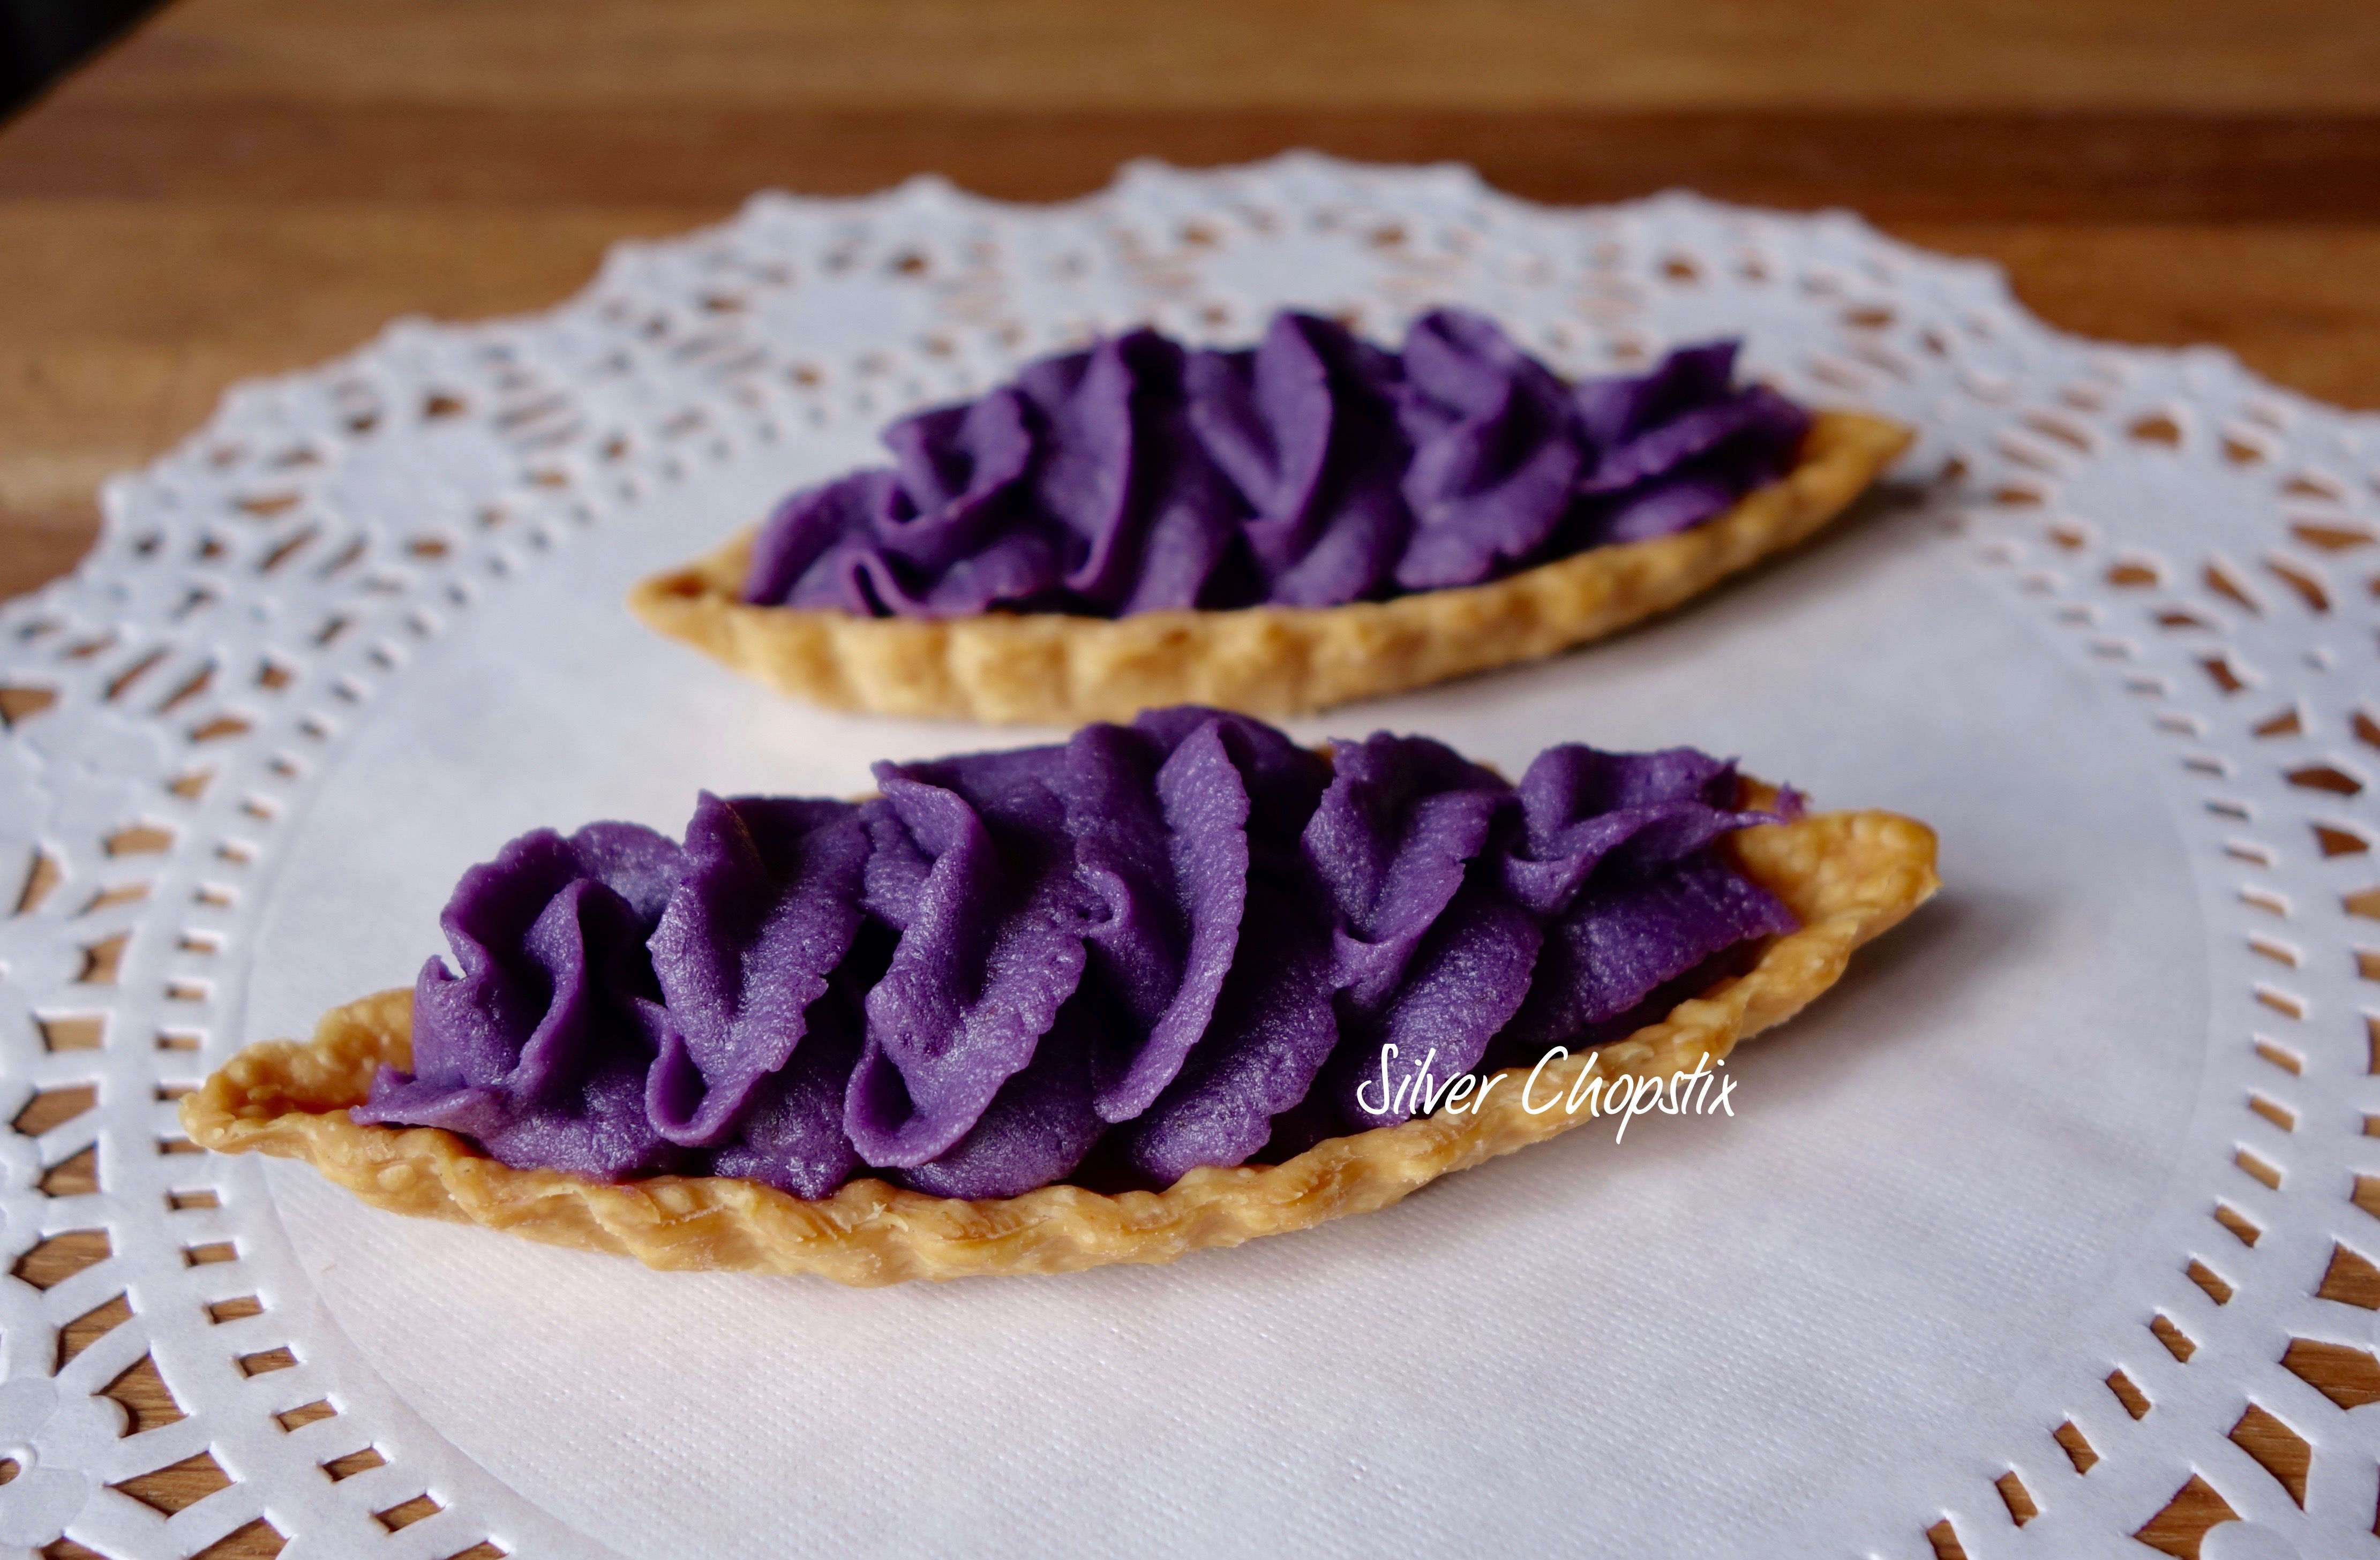 Okinawan Purple Sweet Potato Is Different From Purple Yam Or Ube In